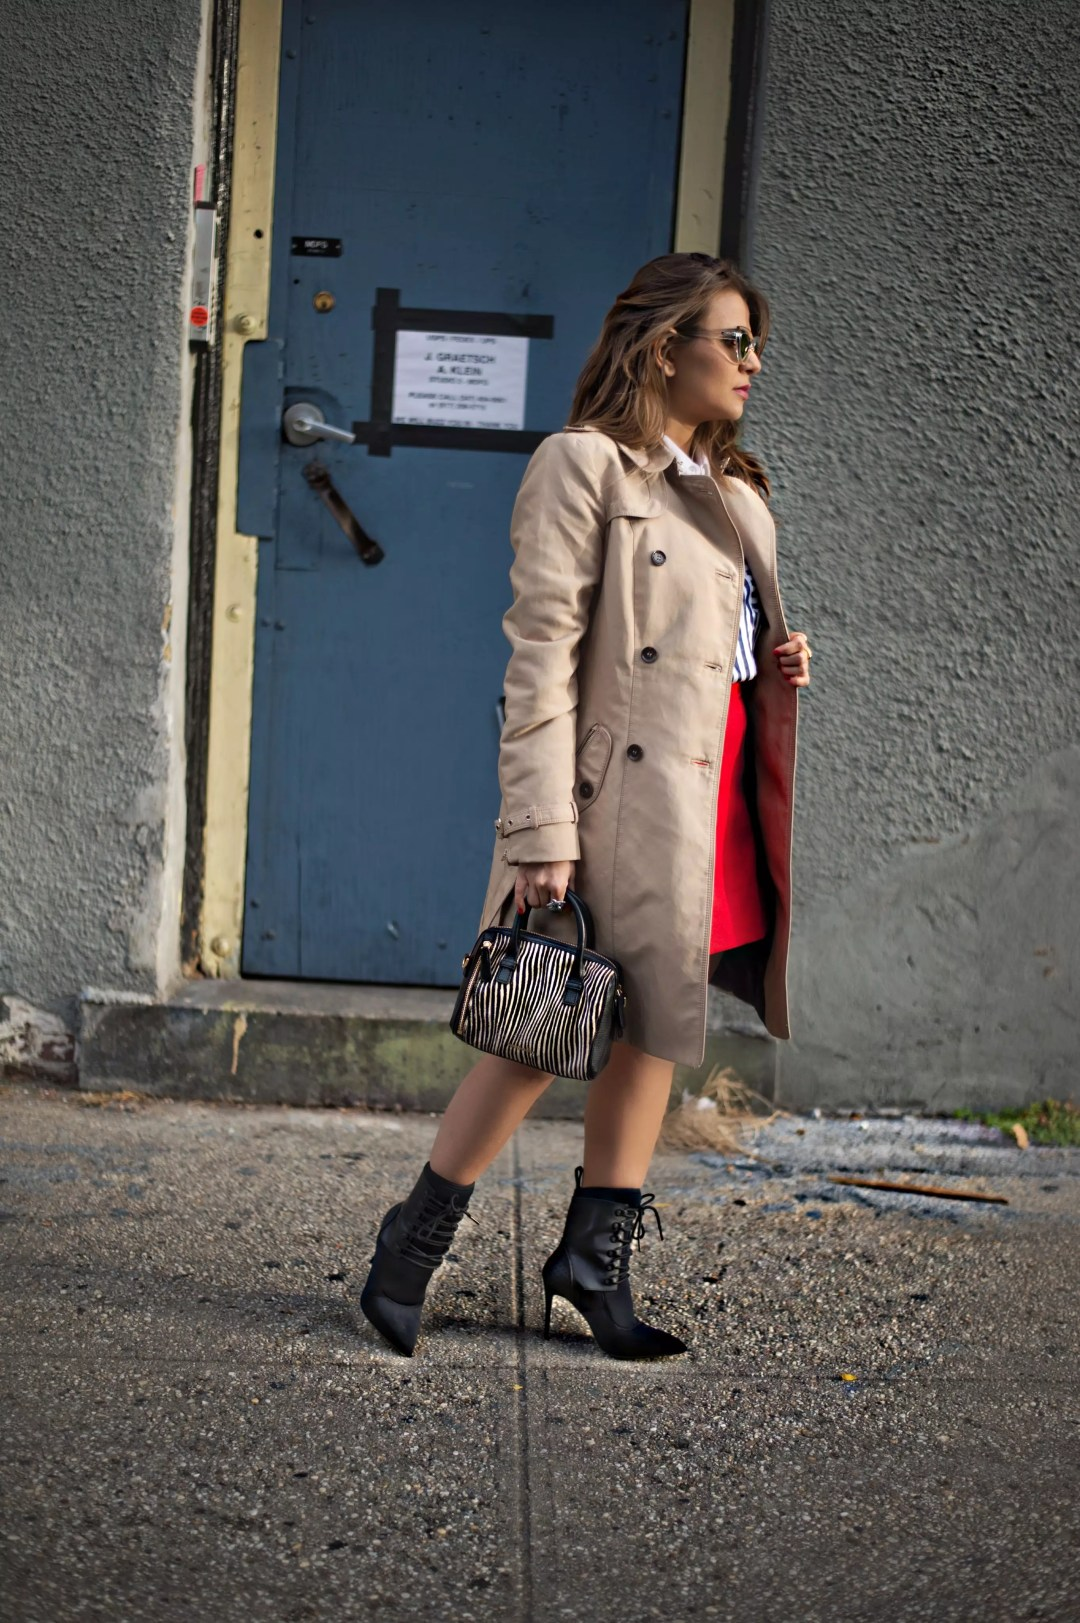 j-crew-a-line-red-skirt-socks-booties-trech-coat-stripe-shirts-street-style-alley-girl-4